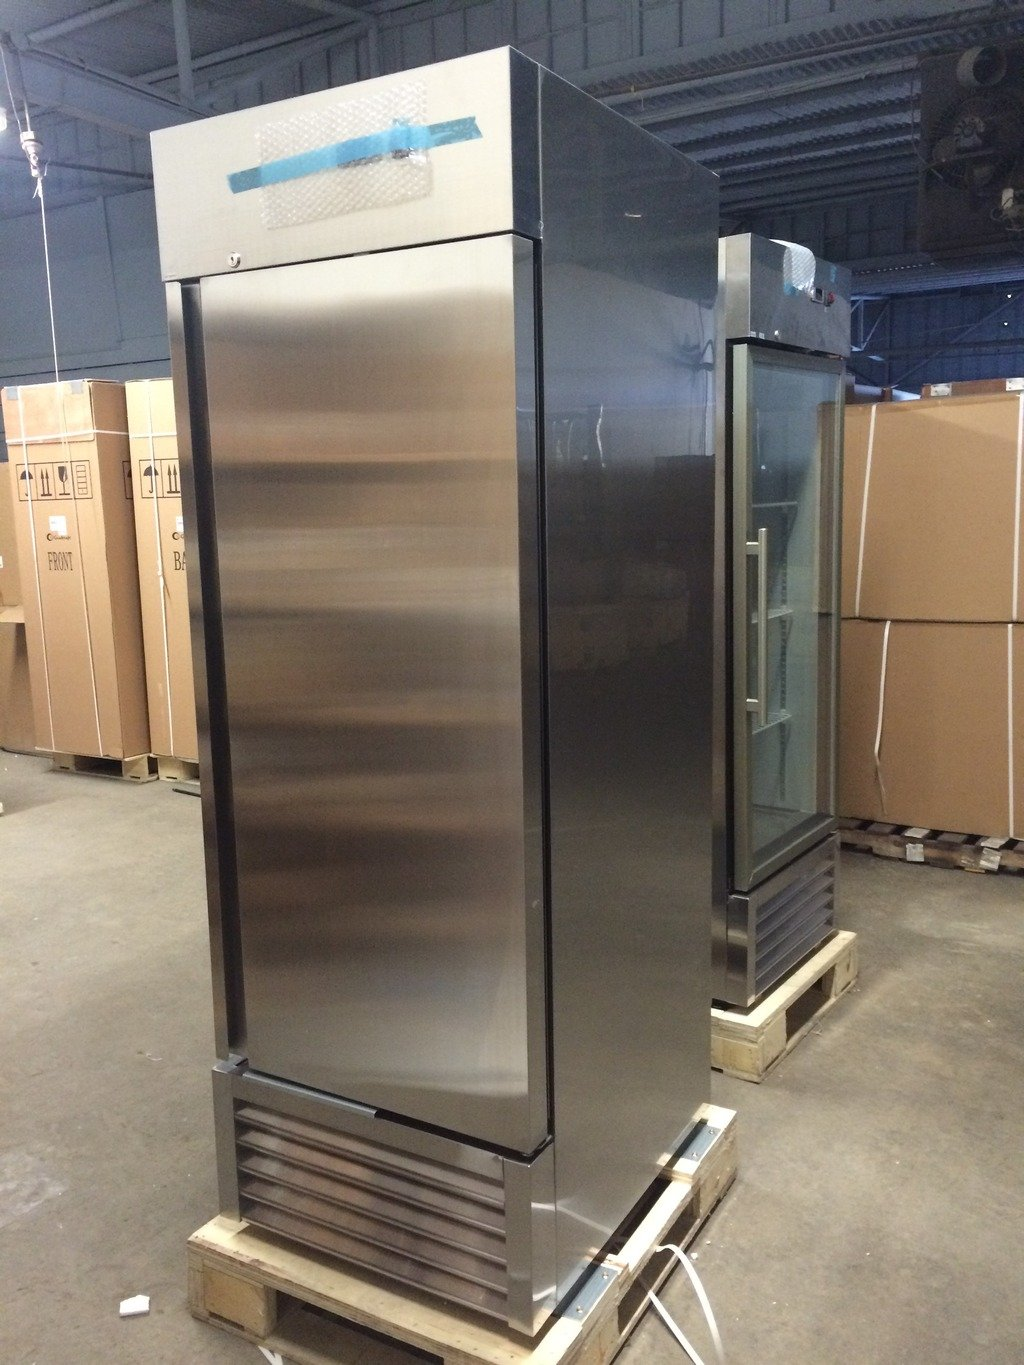 GenKraft Commercial Refrigerator - Single Solid Door 23 Cu.Ft. - For use in the food service industry such as restaurants, bars, food catering, etc. GST23BR